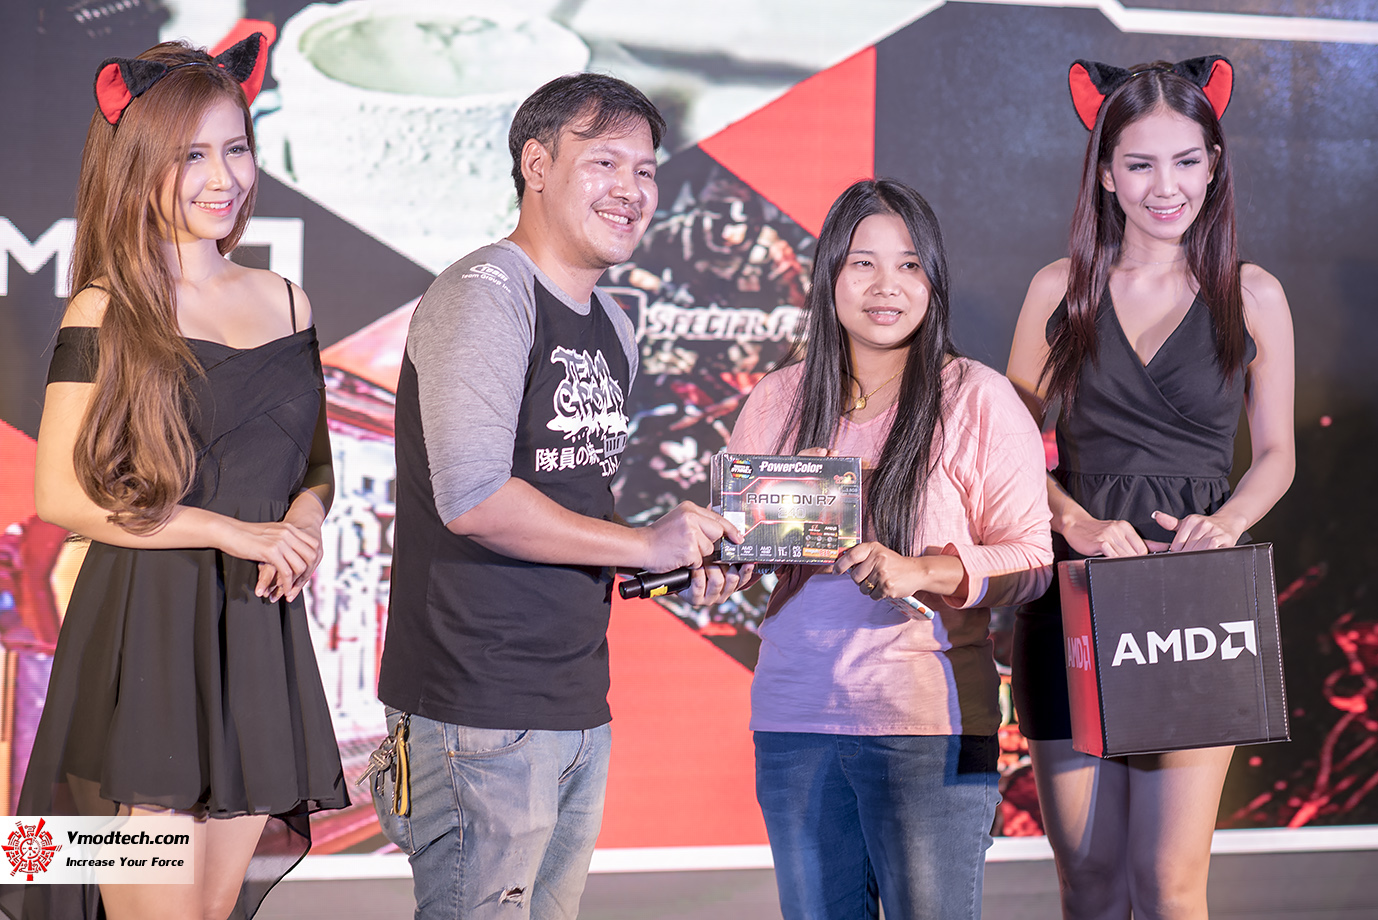 dsc 3093 AMD OMG! Party 2015 (AMD Overclock Modding Gaming Party 2015)